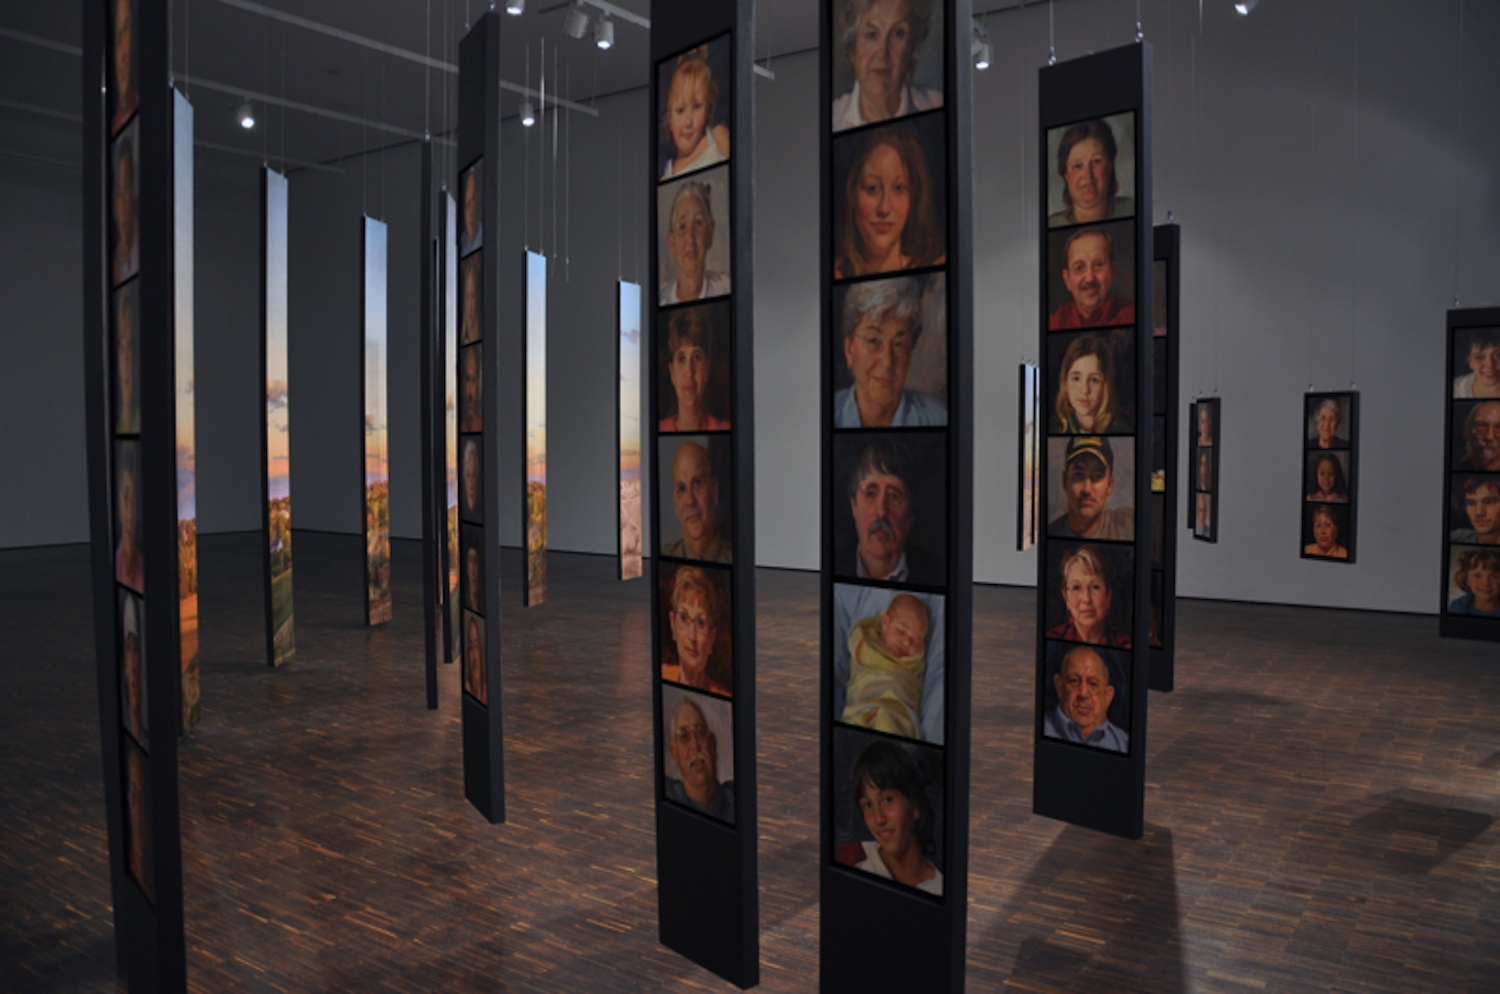 Portrait of Maquoketa: The Dimensional View art exhibition at the Figge Art Museum.